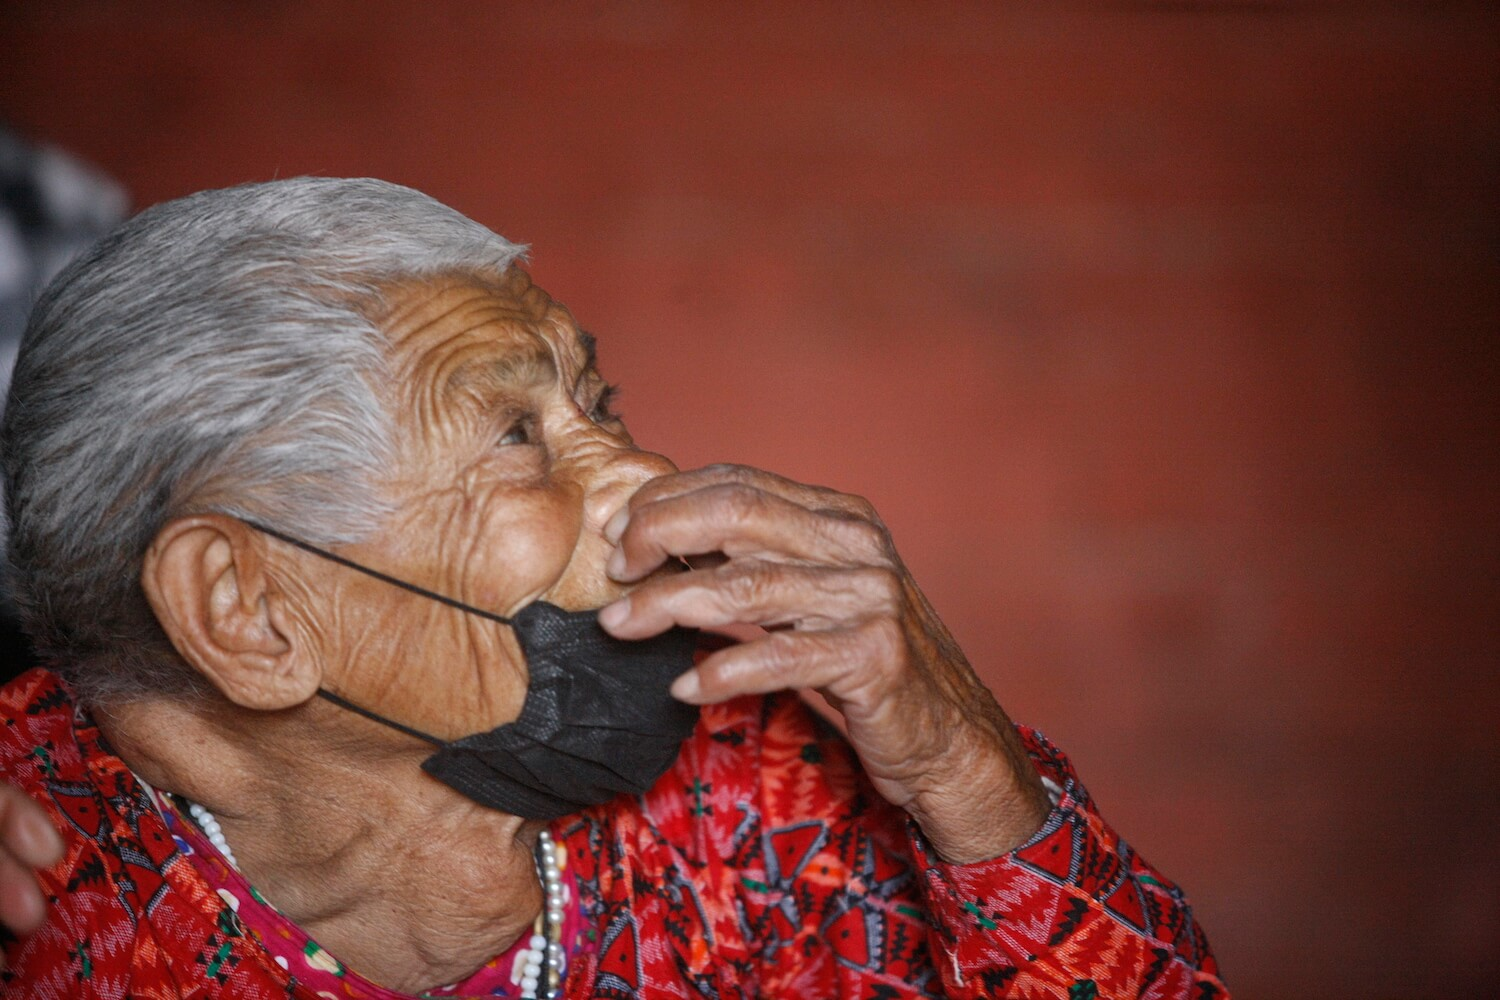 Protecting Nepal's elderly from COVID-19